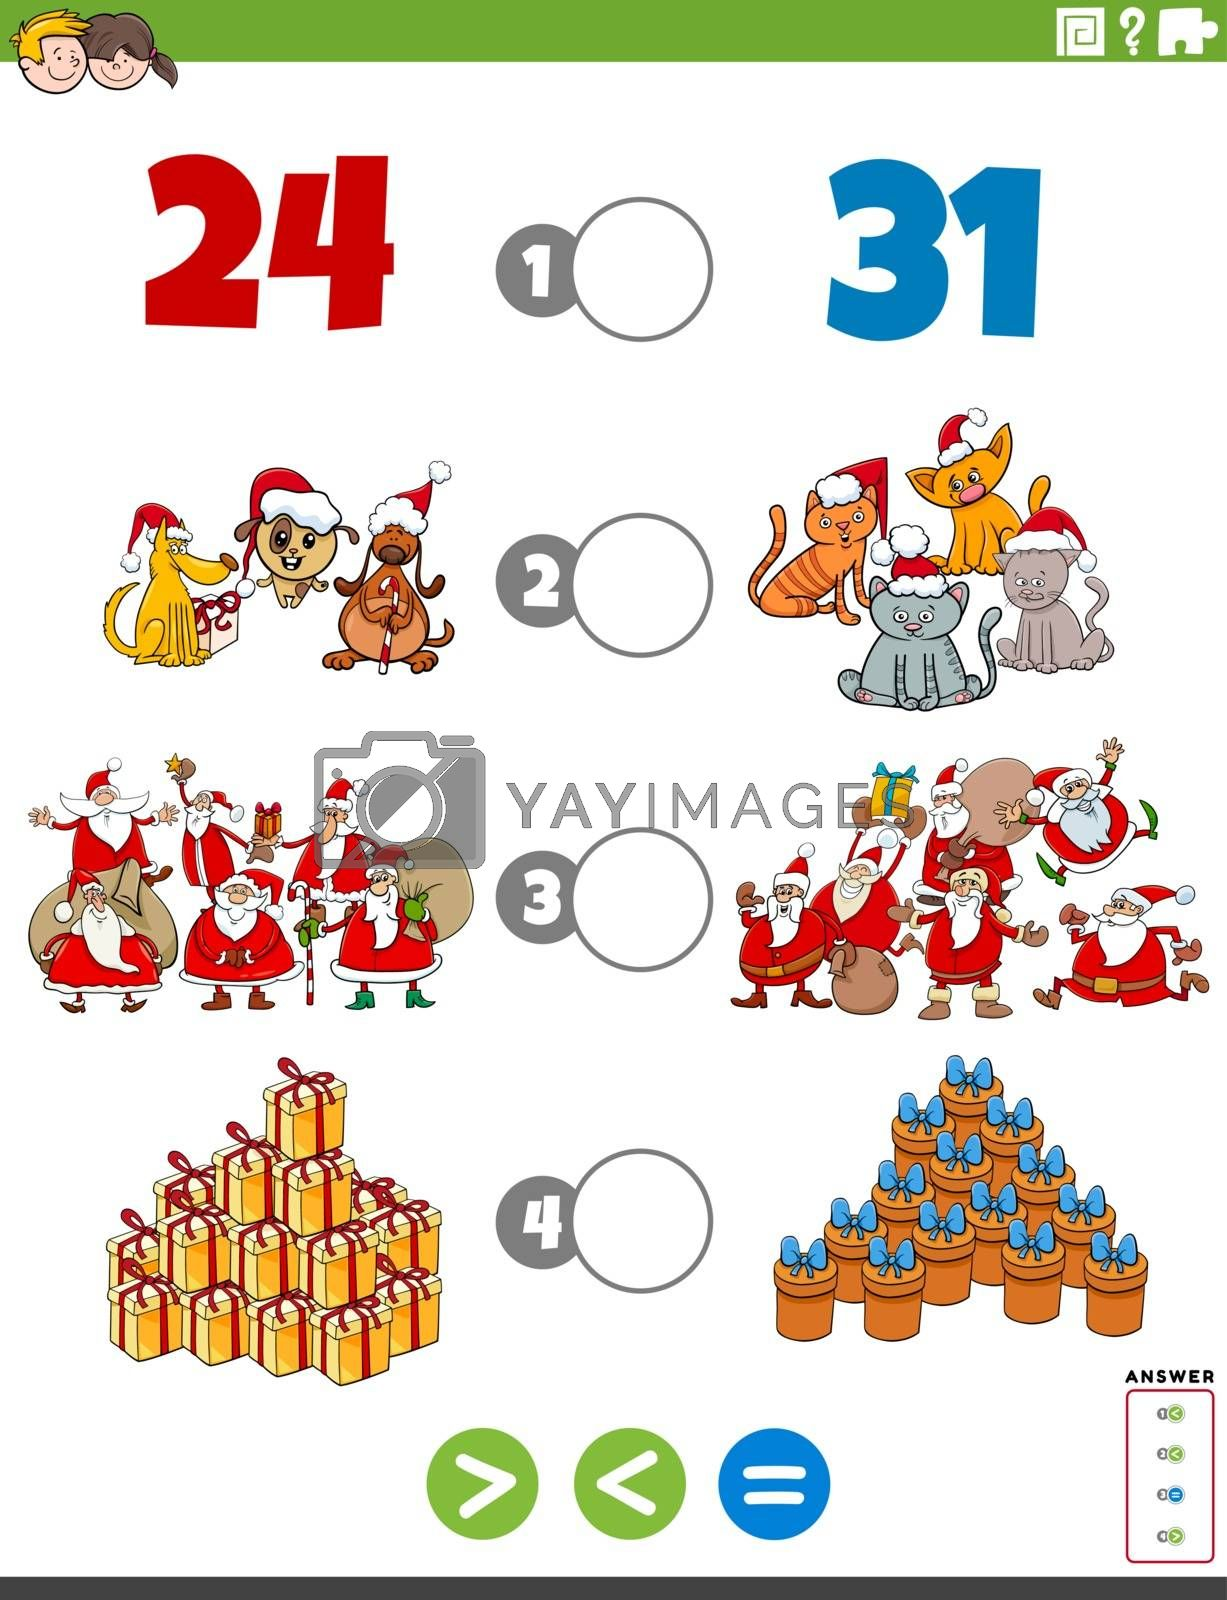 Cartoon Illustration of Educational Mathematical Puzzle Game of Greater Than, Less Than or Equal to for Children with Christmas Characters and Objects Worksheet Page